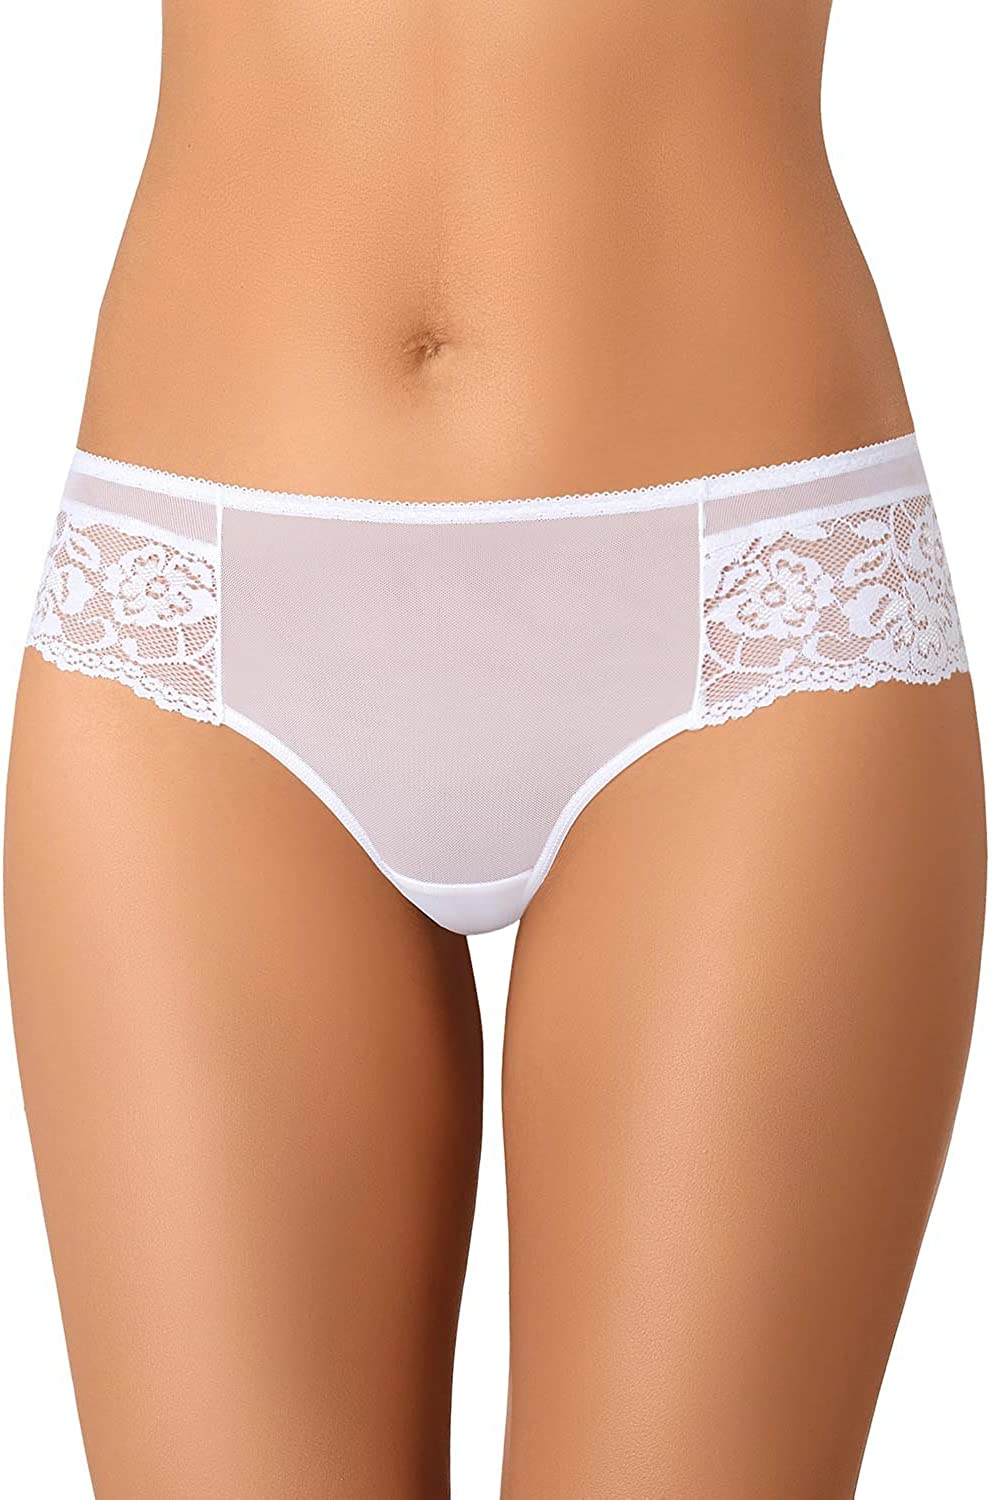 Teyli 319 Womens Thong lace mesh Smooth